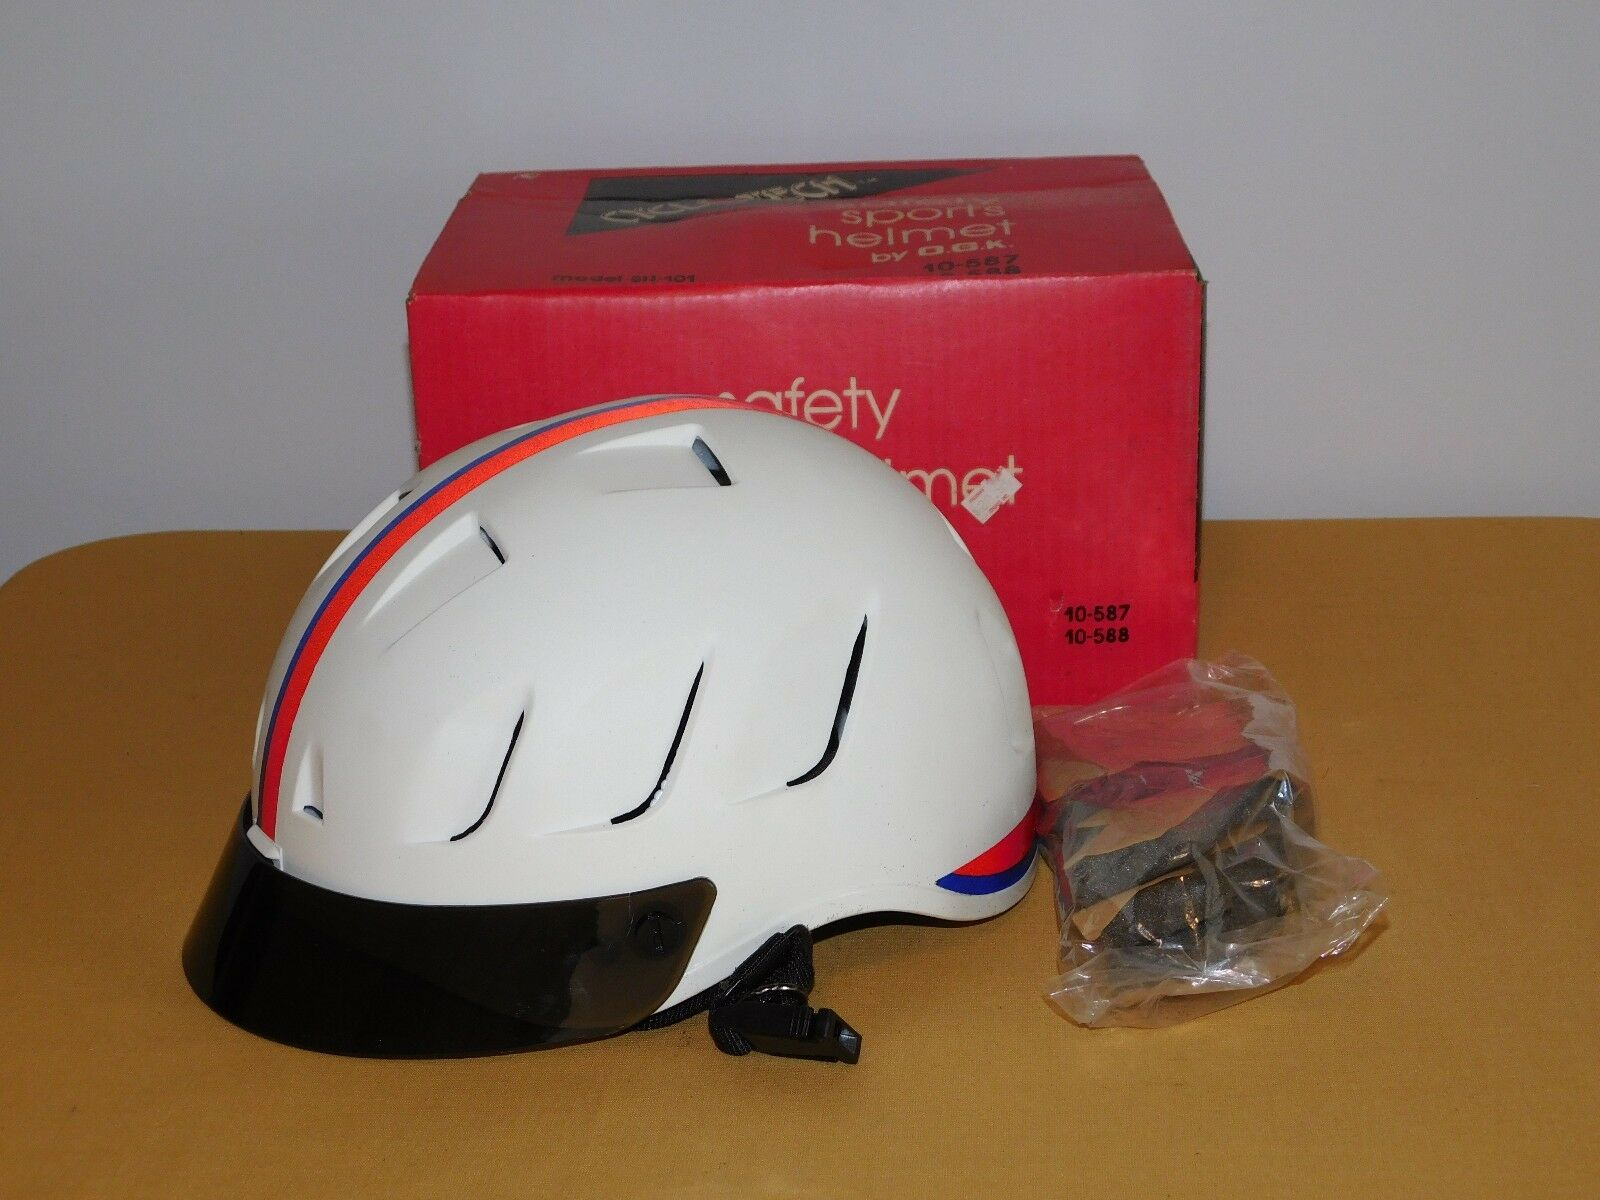 VINTAGE 1983 CYCLOTECH SAFETY SPORTS HELMET  OGK MODEL SH-101  ADULT SIZE  100% free shipping